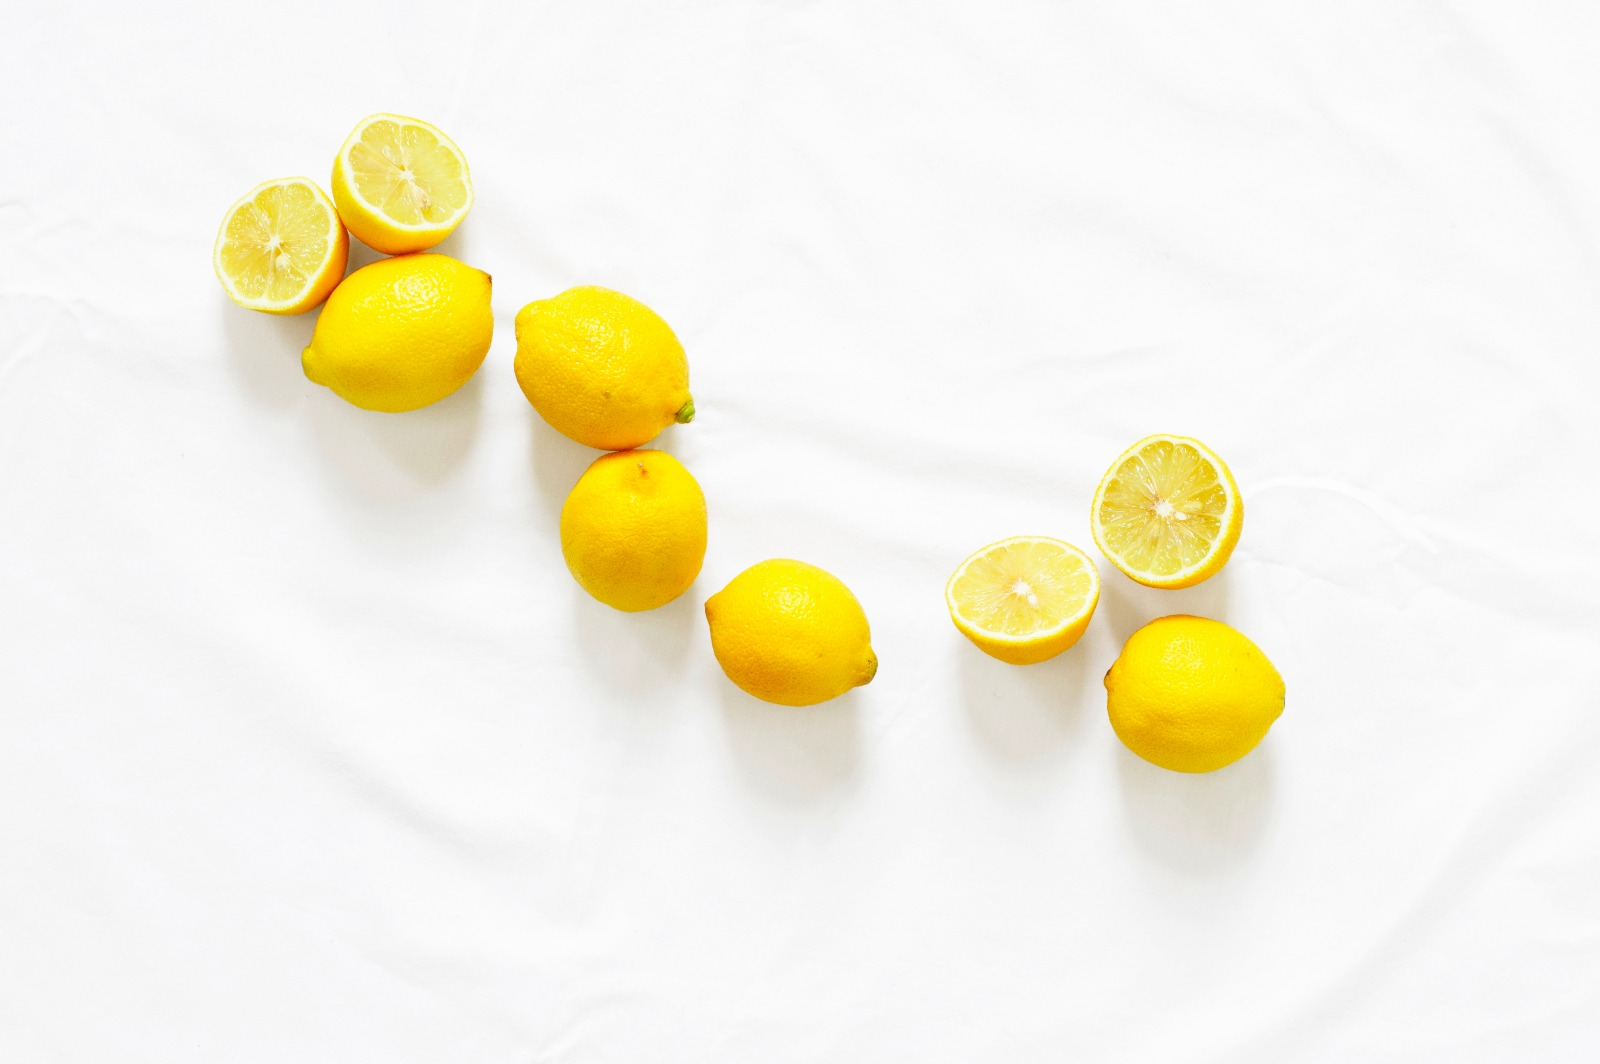 ACQUA E LIMONE: DETOX MADE EASY